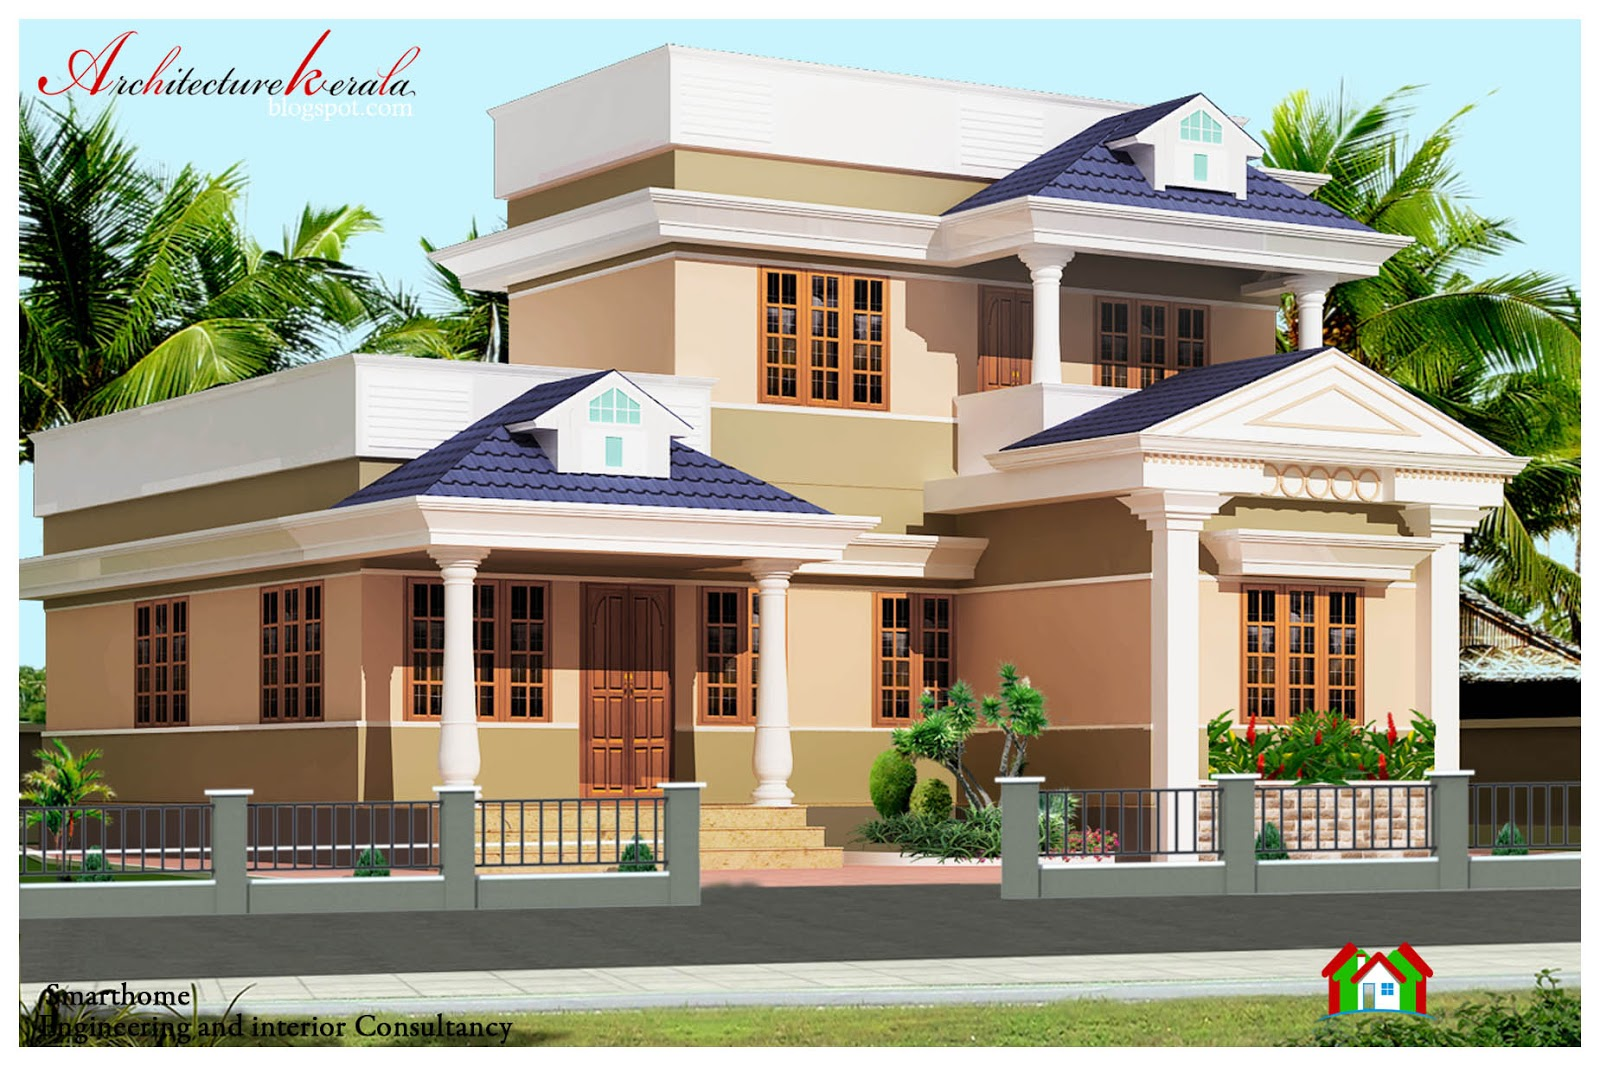 Architecture kerala 1000 sq ft kerala style house plan for Kerala style house plans with cost